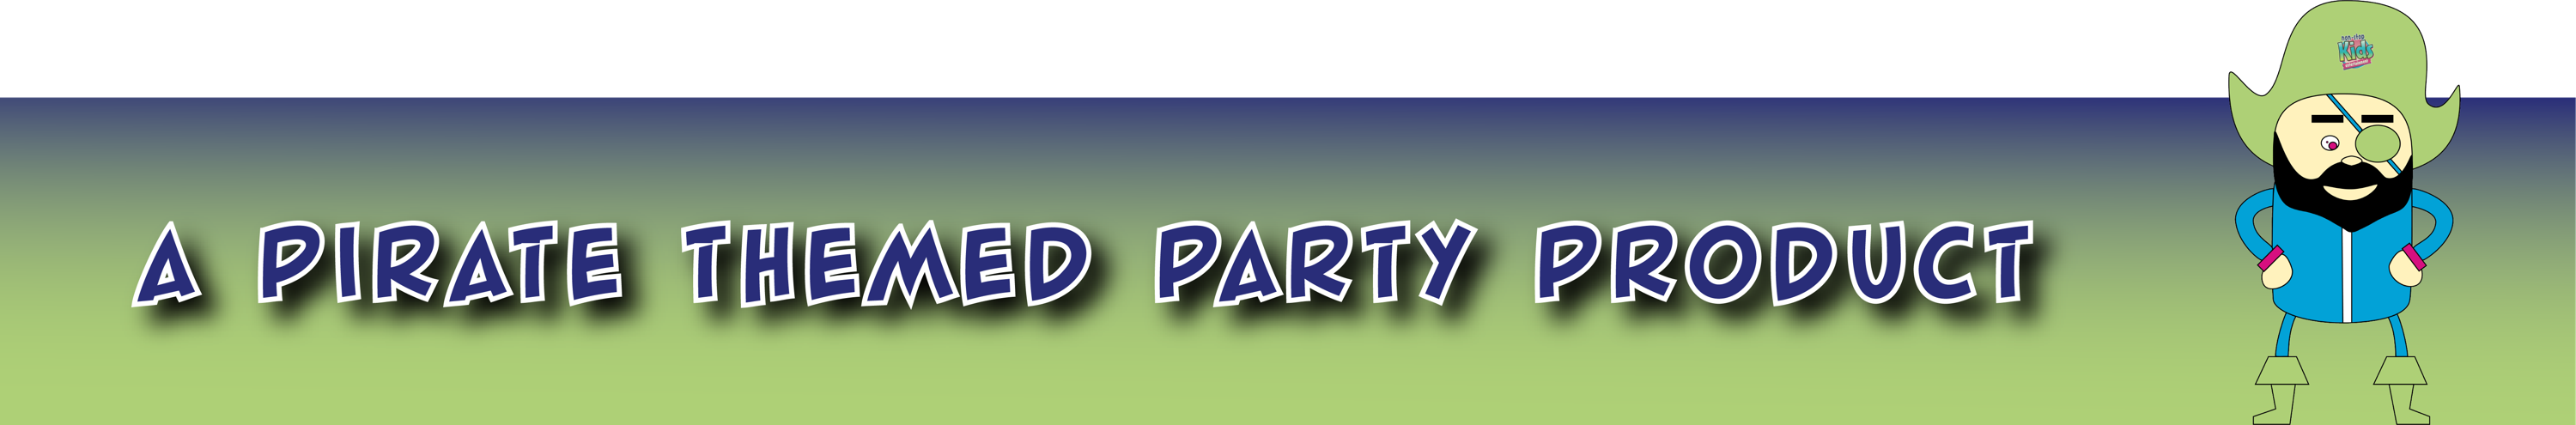 a pirate themed party product banner with pirate design